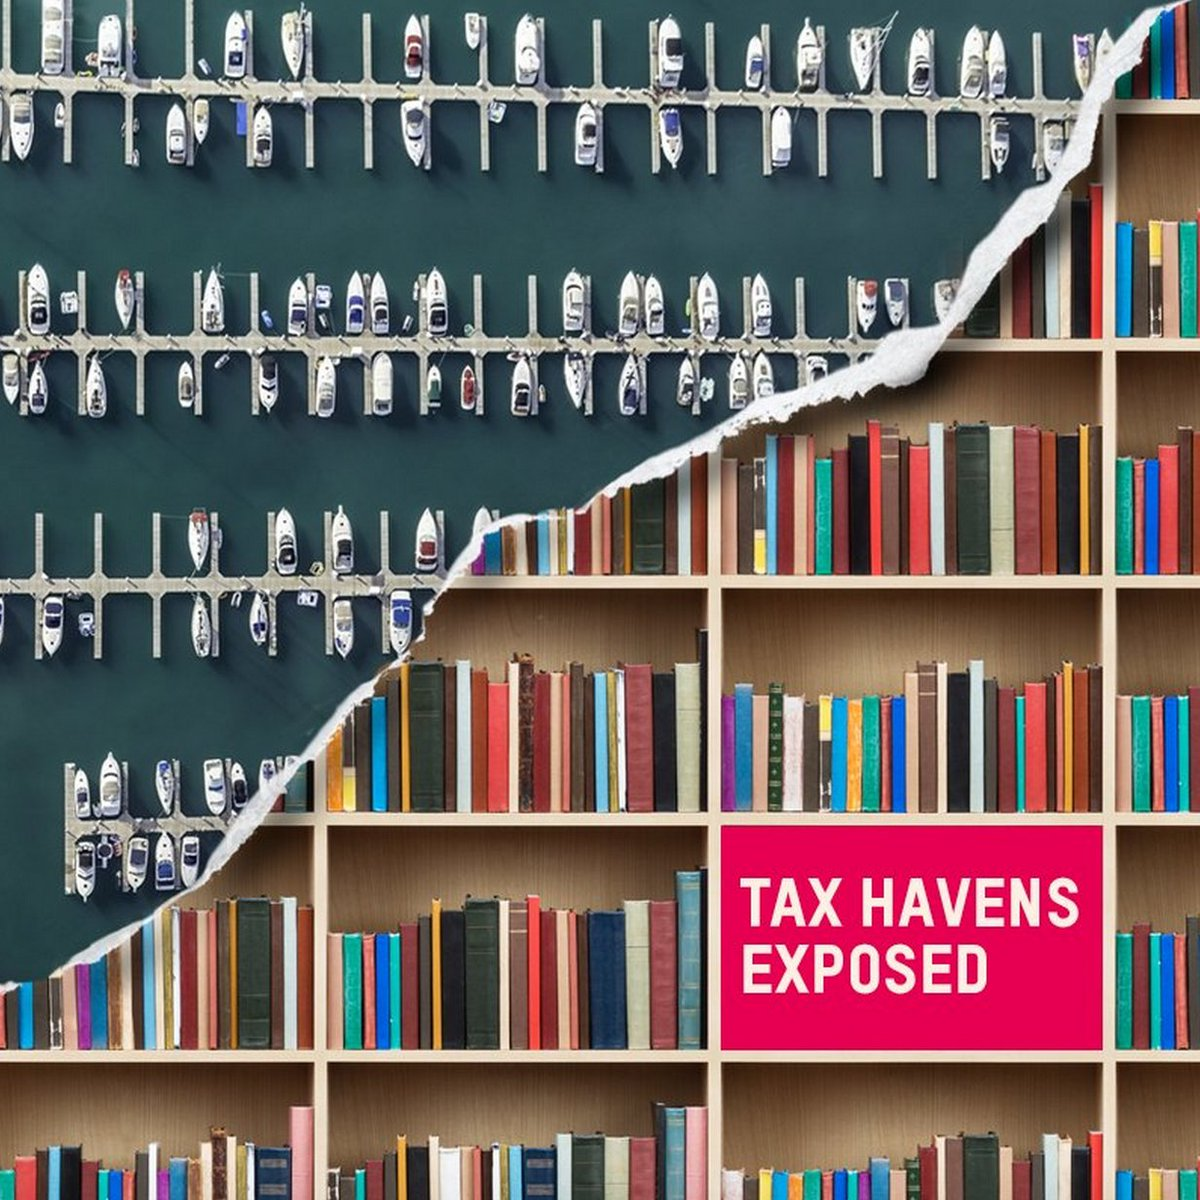 #PanamaPapers reveal the tax dodging that denies poorest people education, health, a future https://t.co/Q1gMf7cFDW https://t.co/xyj3QRives